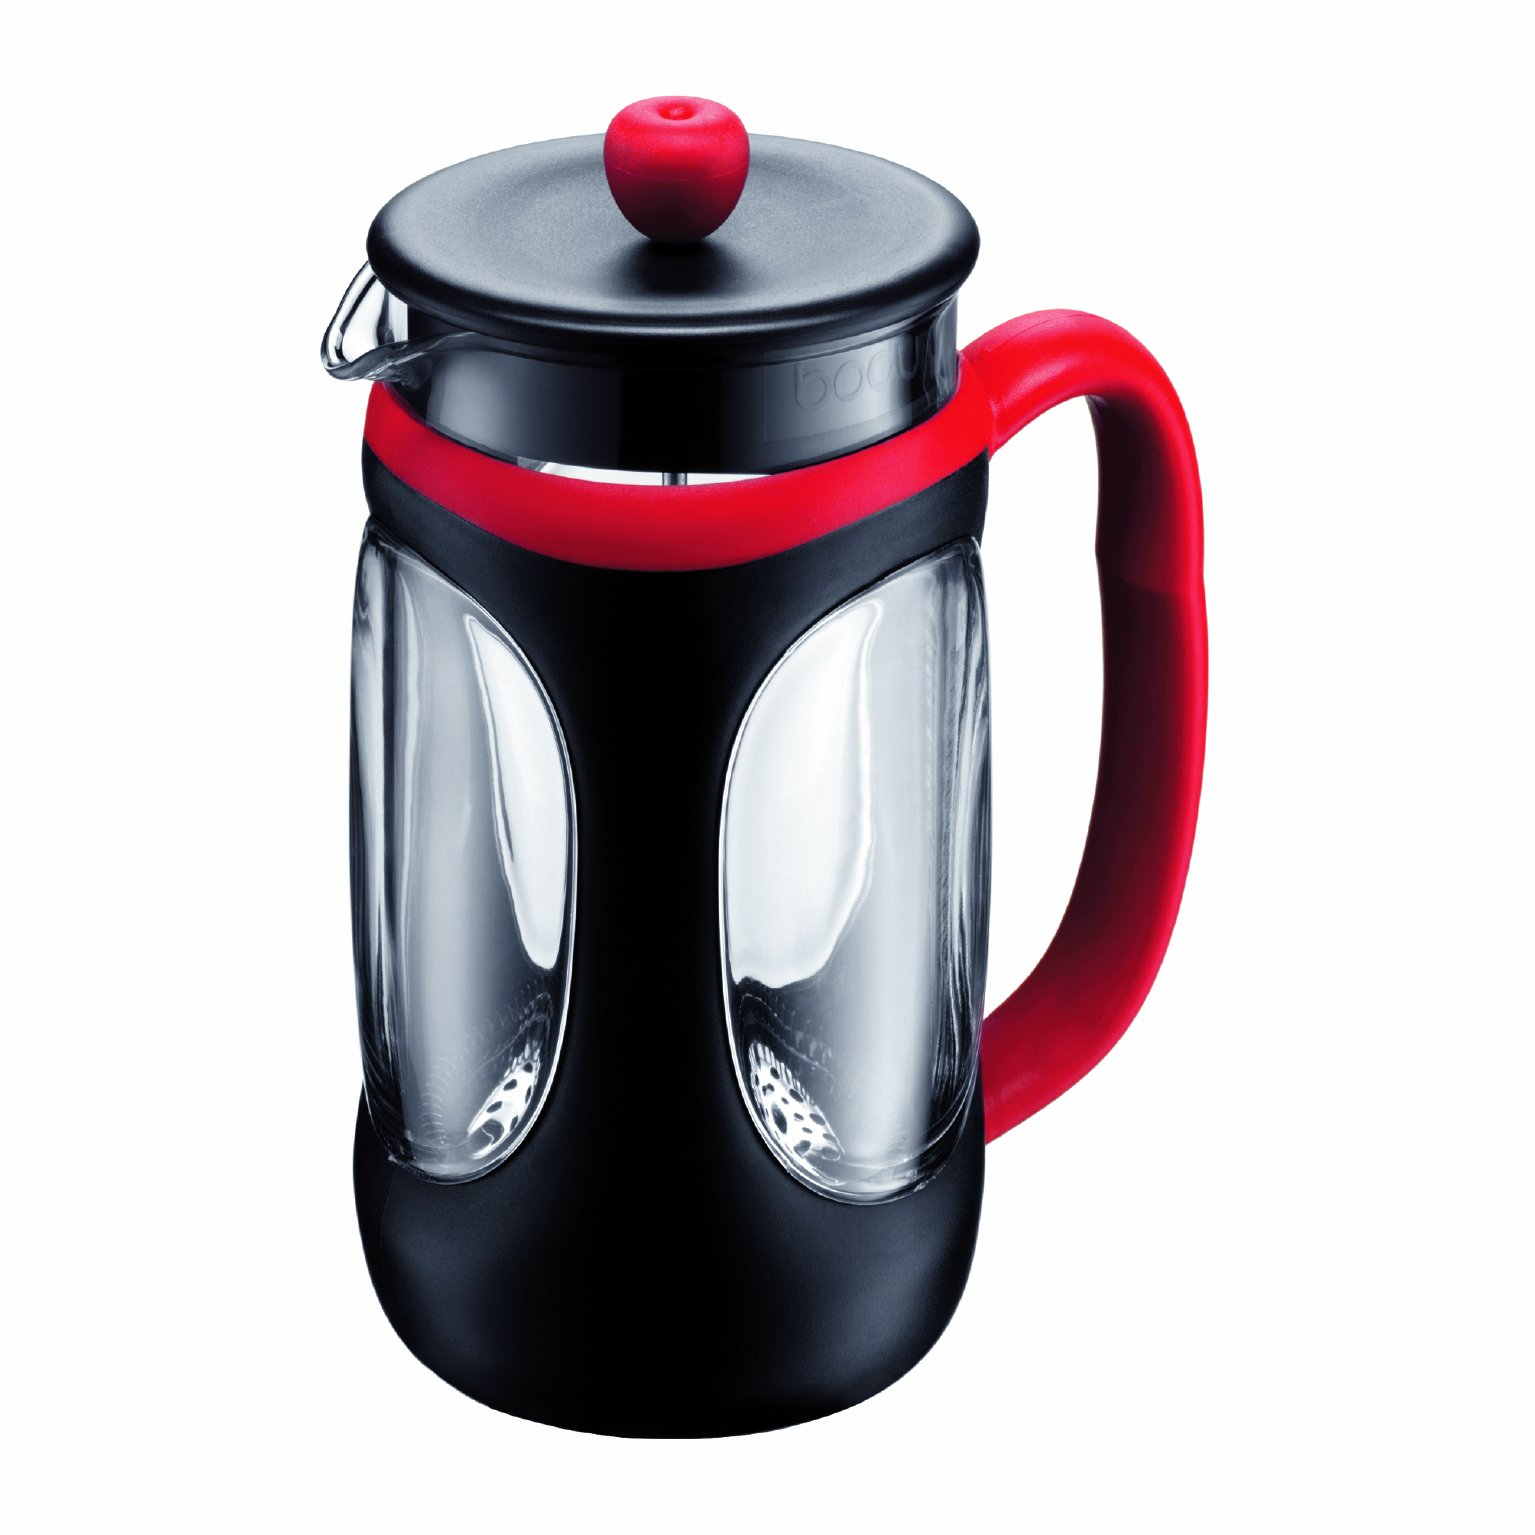 Bodum Young Press French Press Coffee Maker, 34 Ounce, 1 Liter, (8 Cup), Red and Black